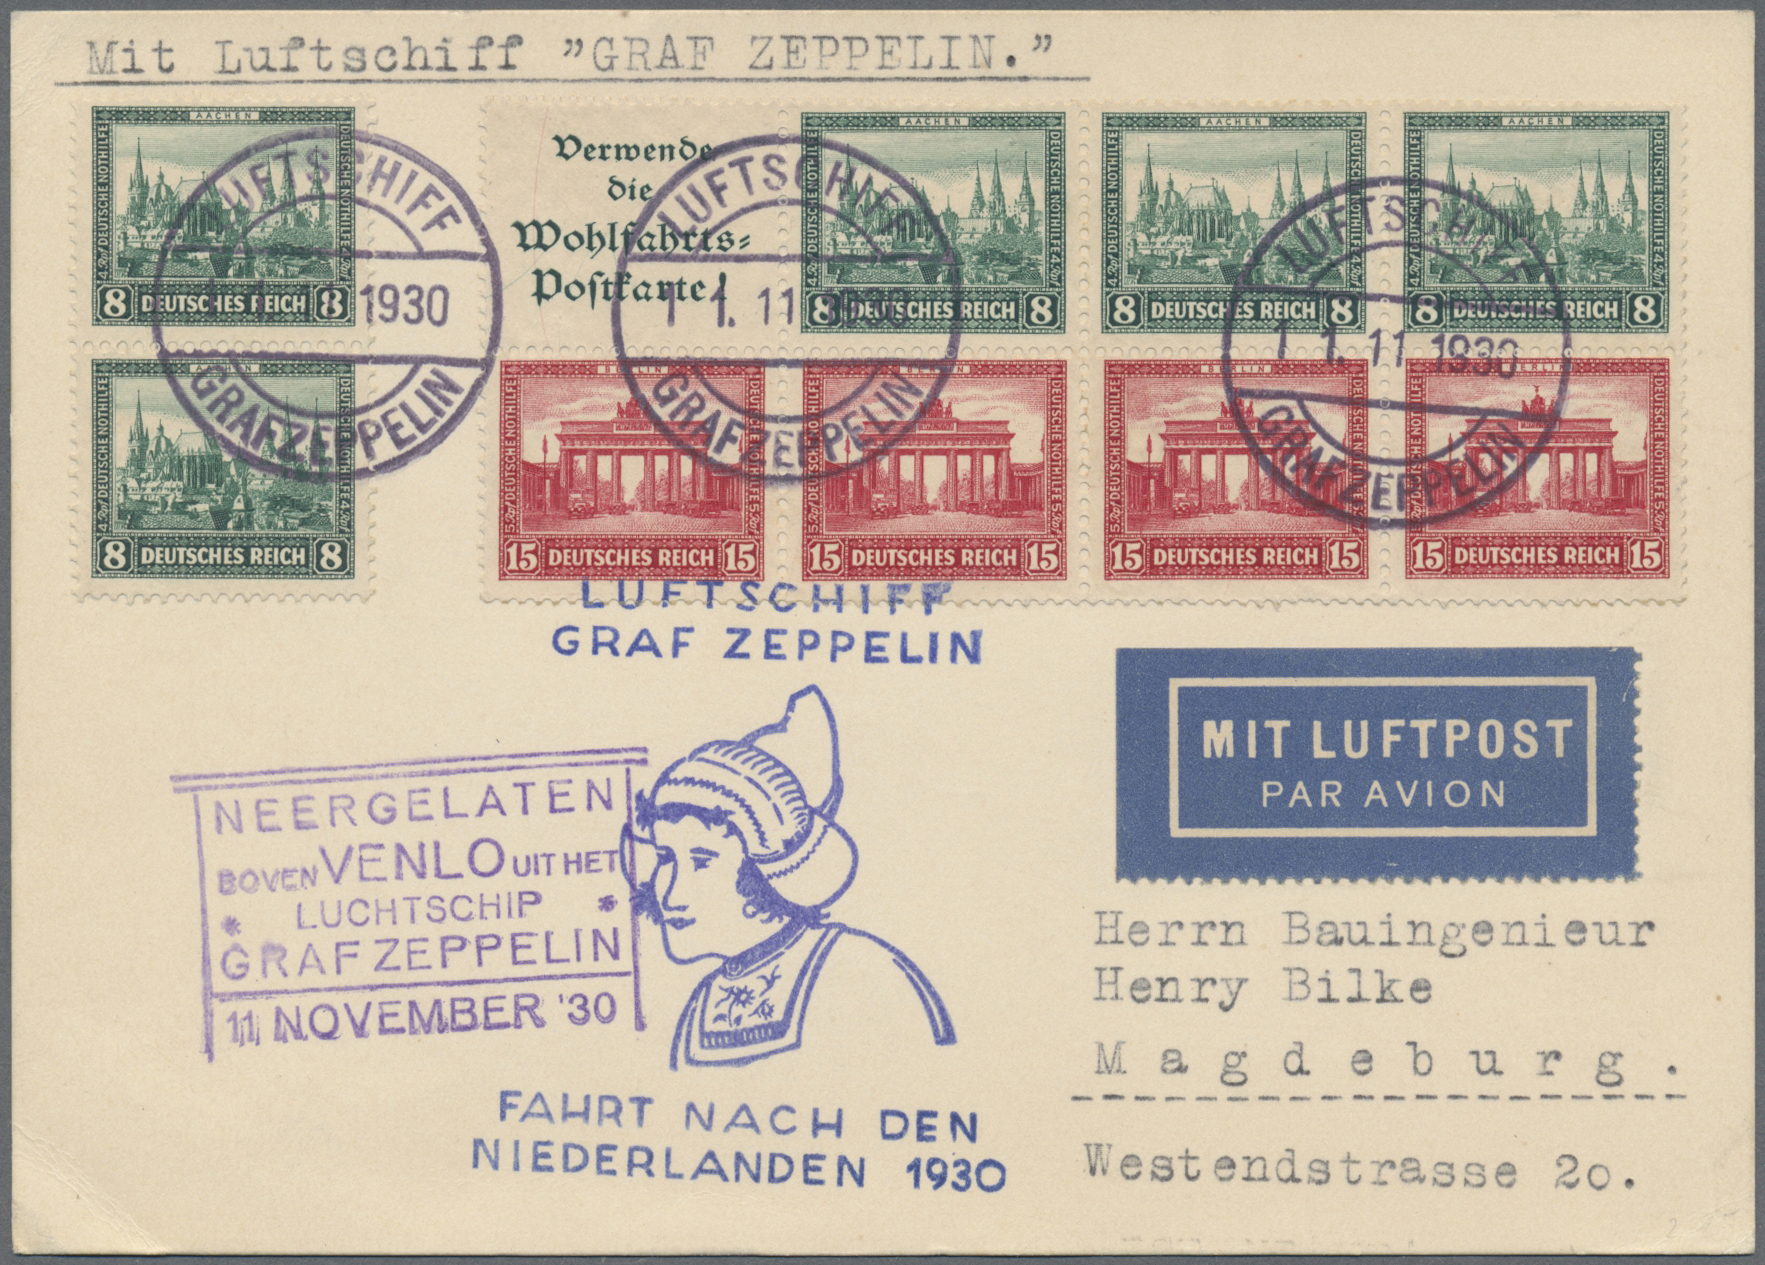 Lot 21625 - Deutsches Reich - Markenheftchenblätter  -  Auktionshaus Christoph Gärtner GmbH & Co. KG Single lots Germany + Picture Postcards. Auction #39 Day 5